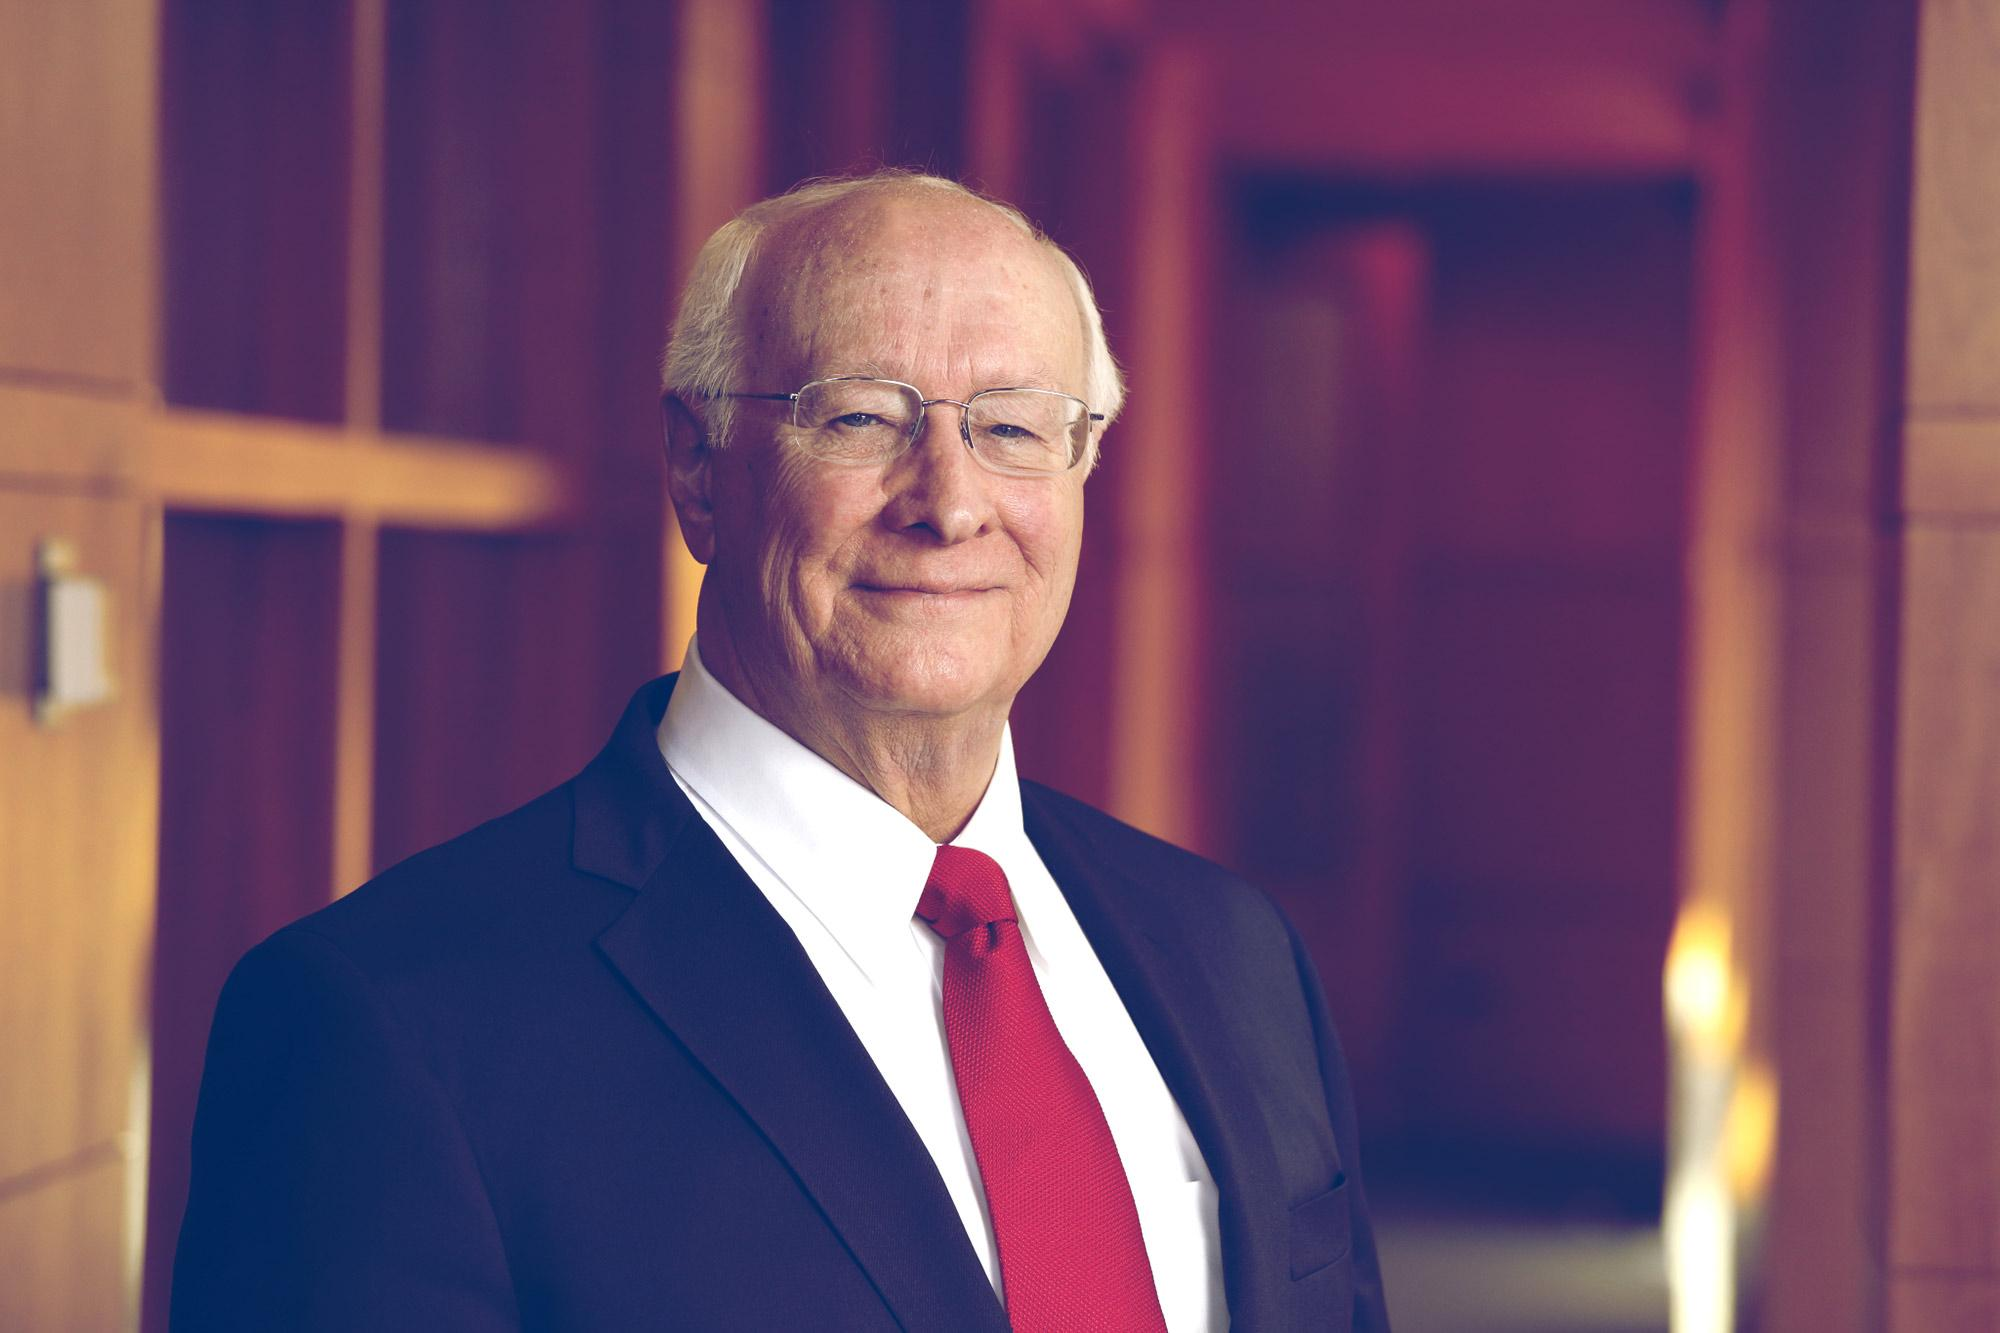 John Norton Moore, the Walter L. Brown Professor of Law, is celebrating 50 years at the University of Virginia School of Law.